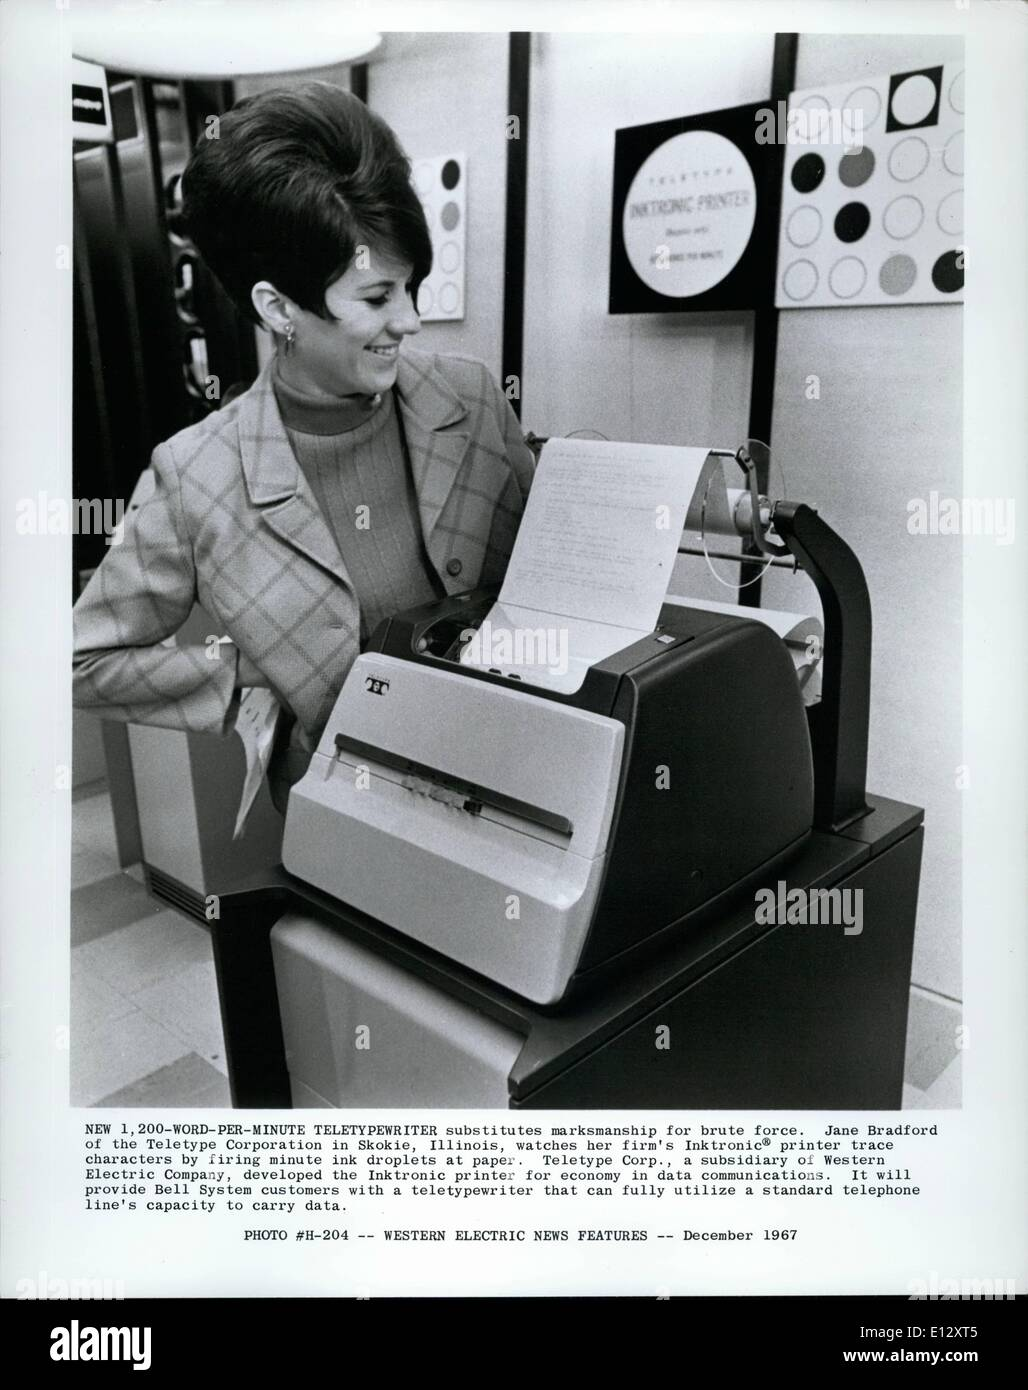 Feb. 25, 2012 - New 1-200 Word per minute teletypewriter substitutes marksmanship for brute force. Jane Bradford of the teletype corporation in Skokie, Illinois, watches her firm's Inktronic printer trace character by firing minute ink droplets at paper. Teletype Corp., a subsidiary of Western Electric Company, developed the Inktronic printer for economy in data communications. It will provide Bell Systems customers with a teletypewriter that can fully utilize a standard telephone lines capacity to carry data. - Stock Image